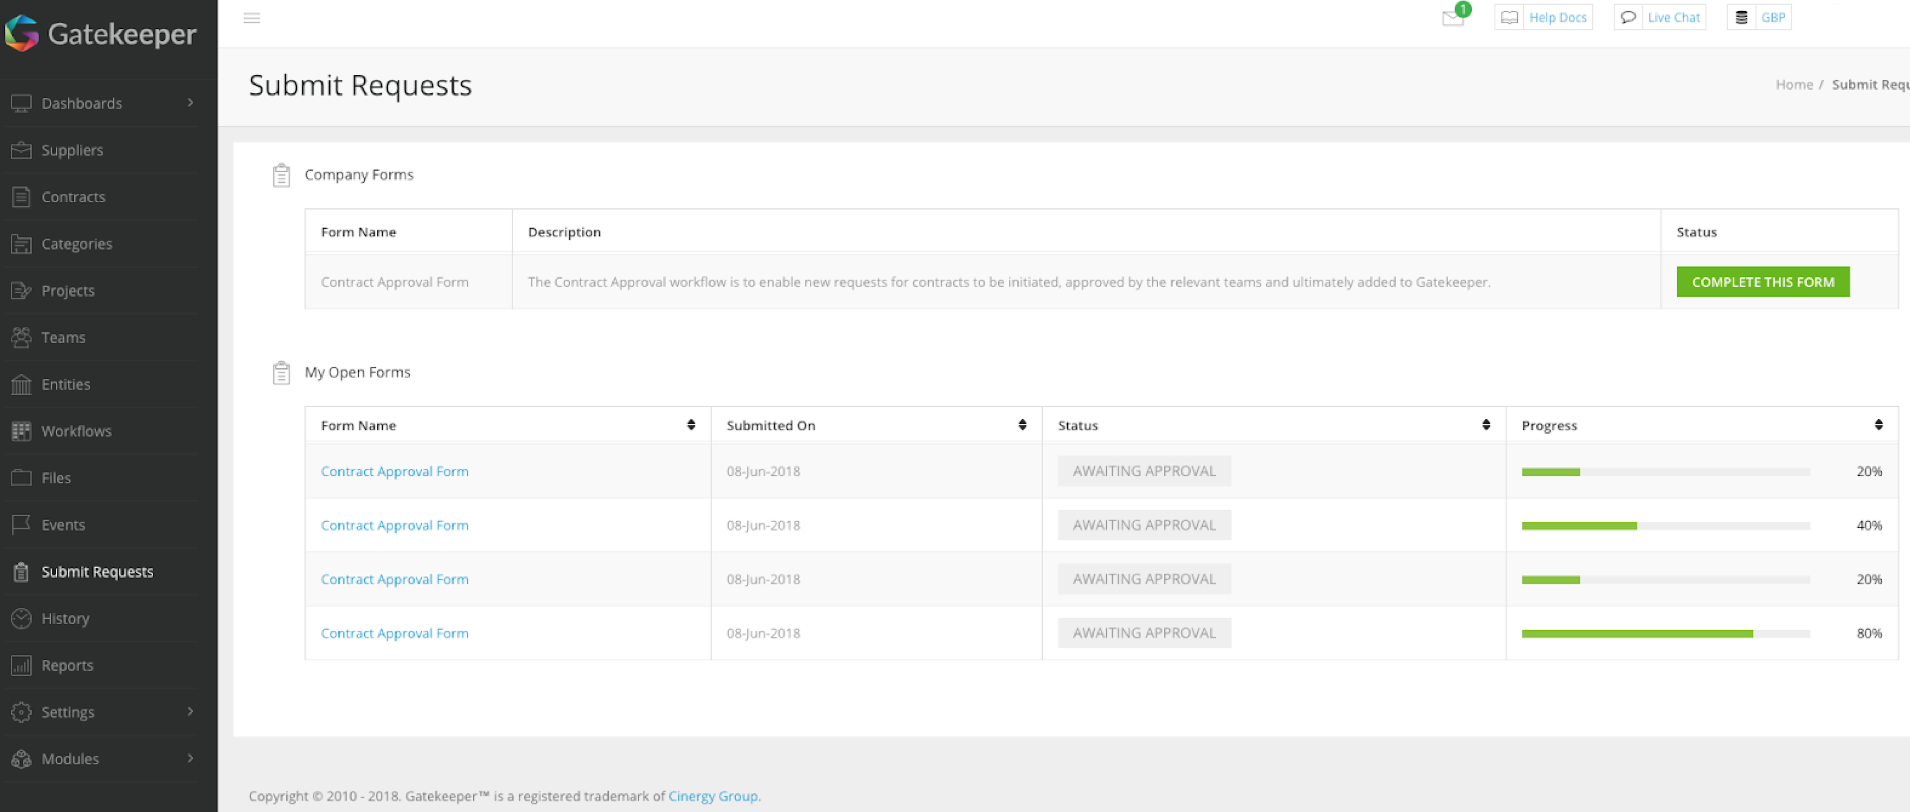 Example request dashboard showing live forms